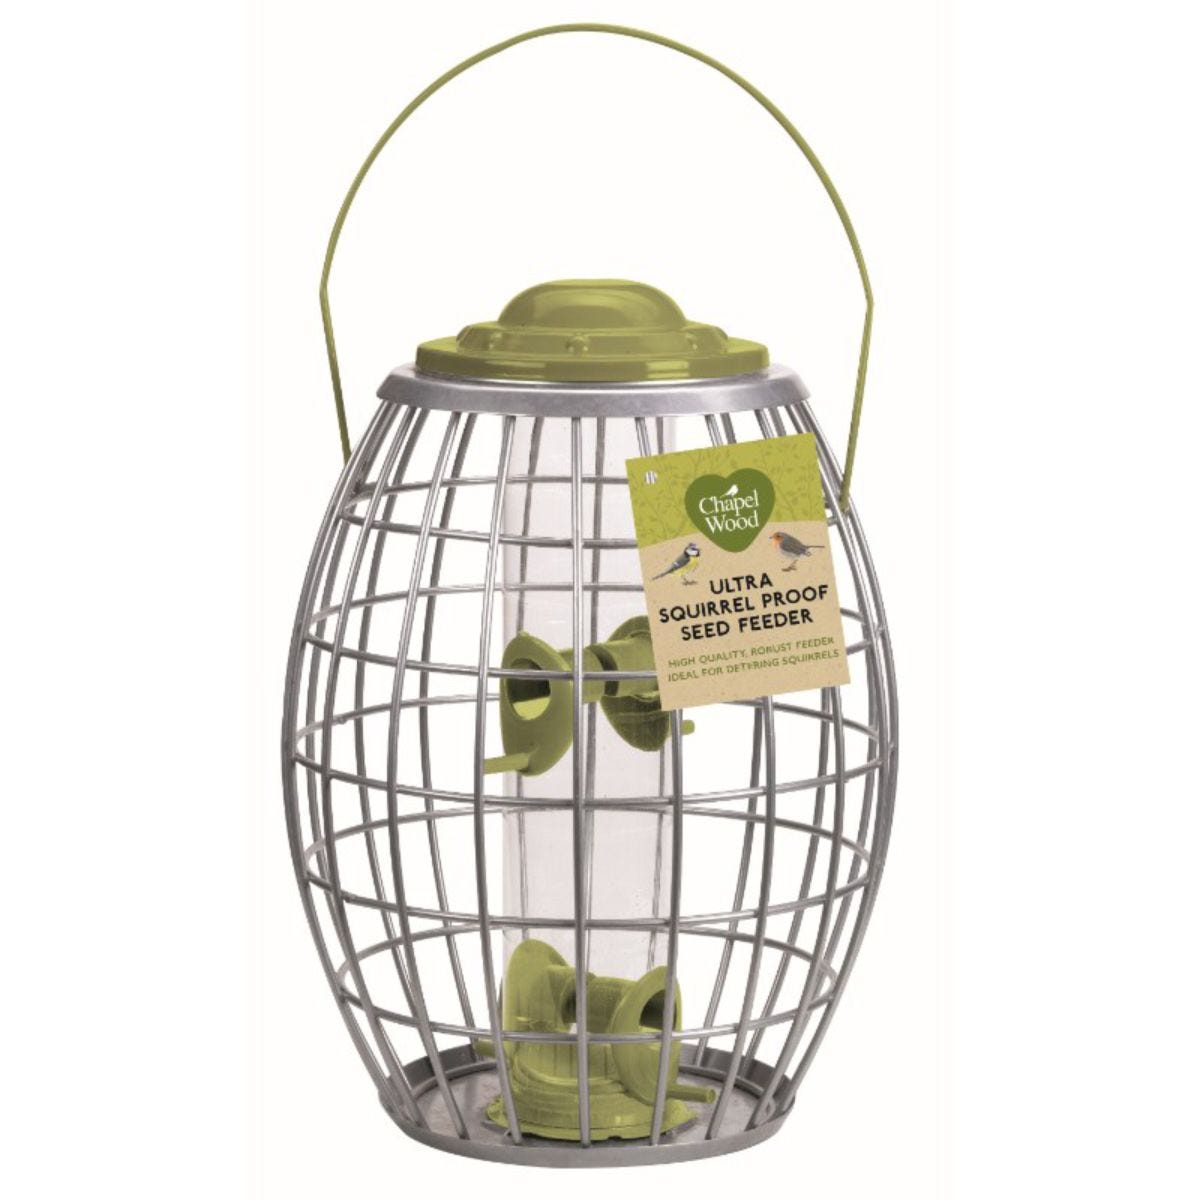 Chapelwood Olive Green Seed Feeder